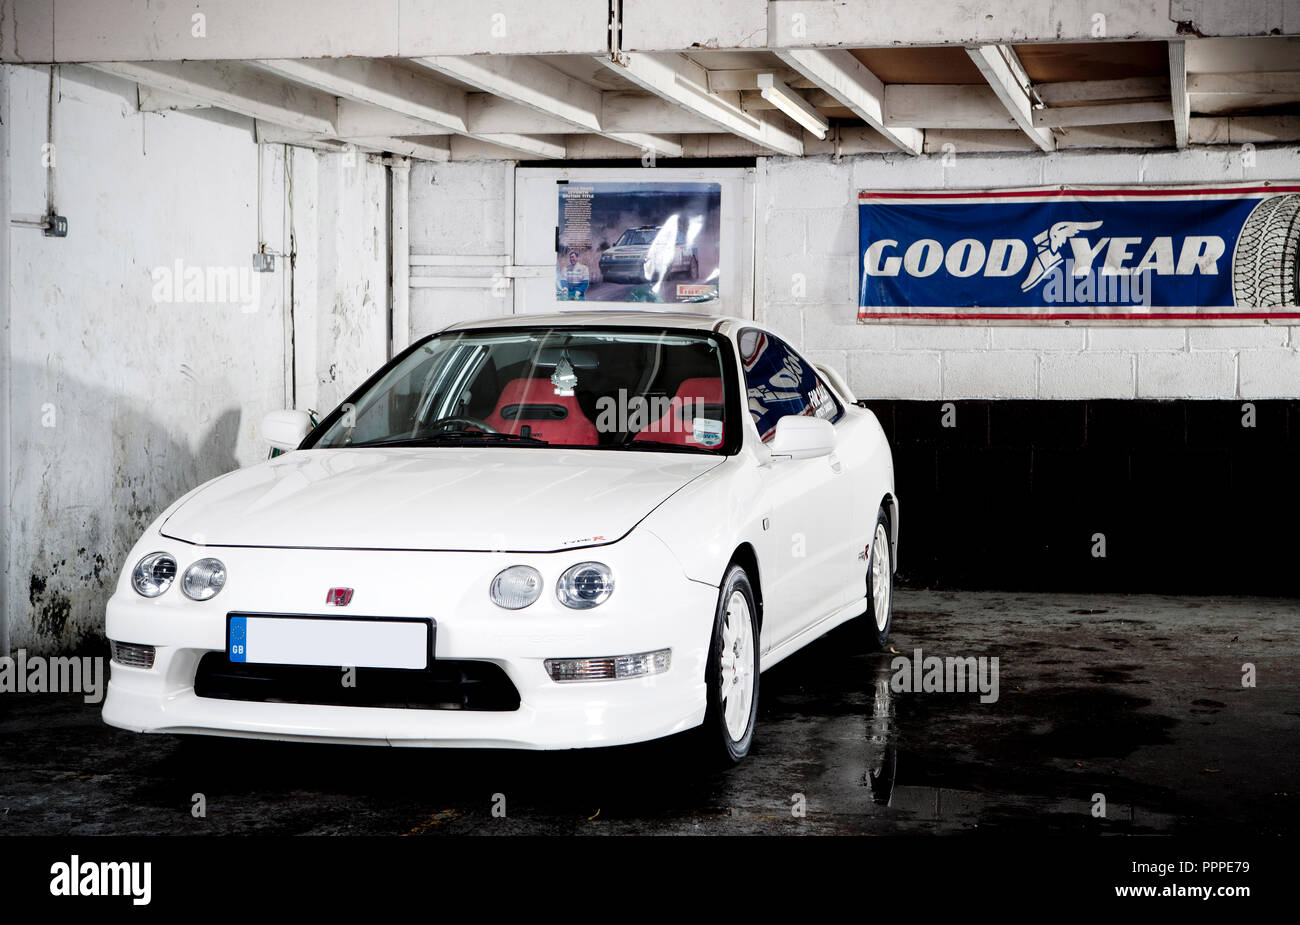 Honda Integra Type R High Resolution Stock Photography And Images Alamy